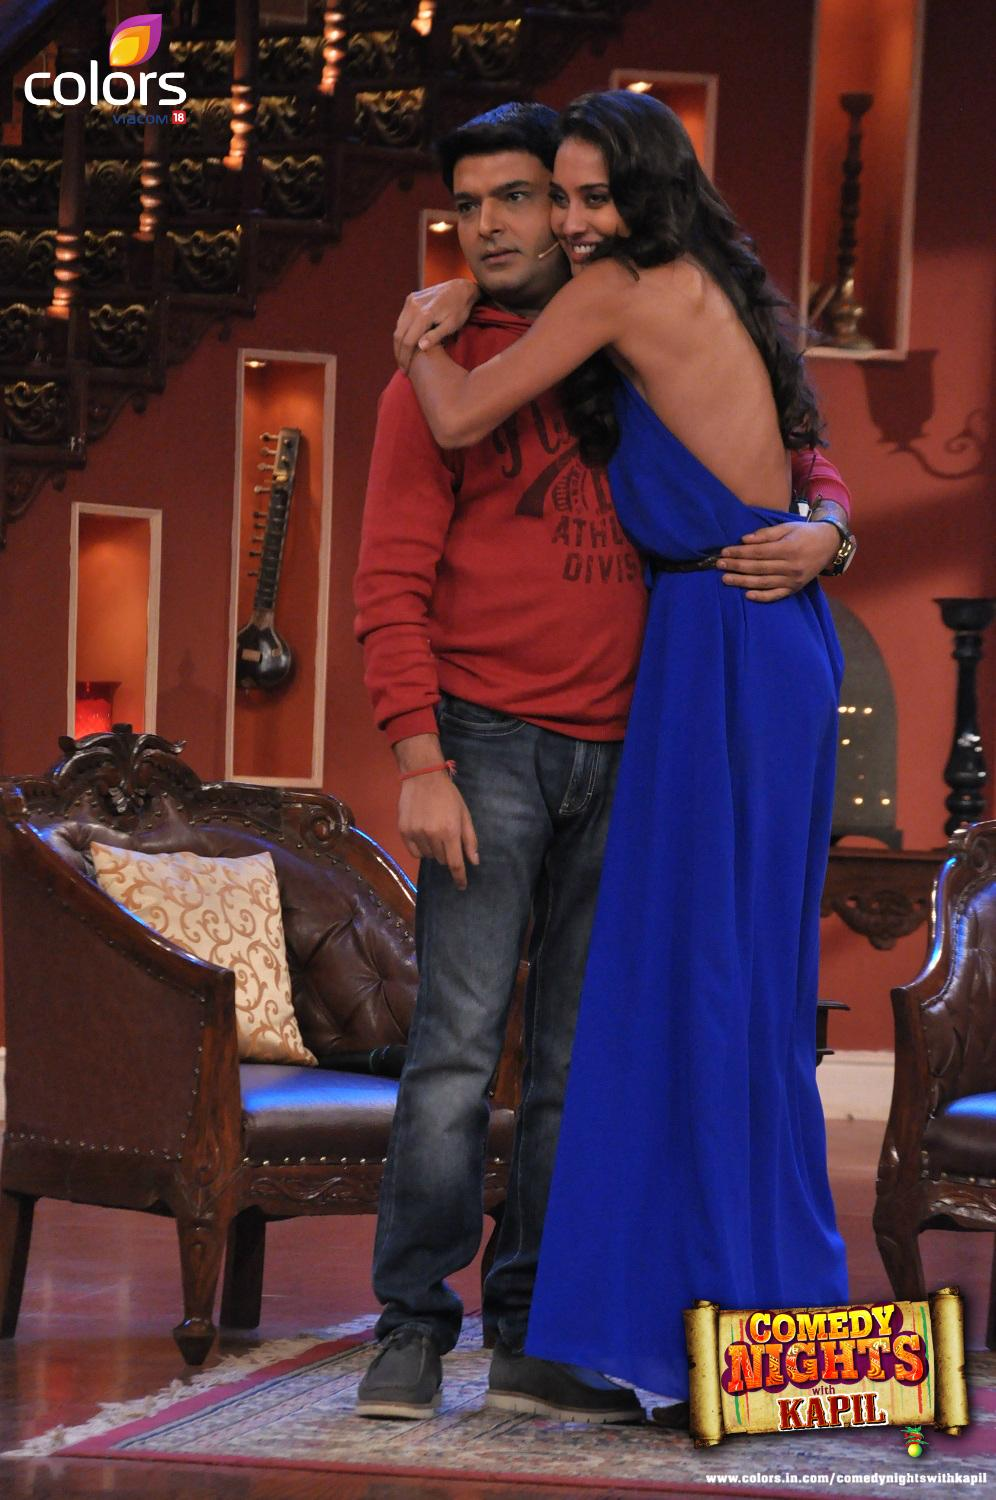 Comedy Nights With Kapil 2nd November 2014 The Shaukeens